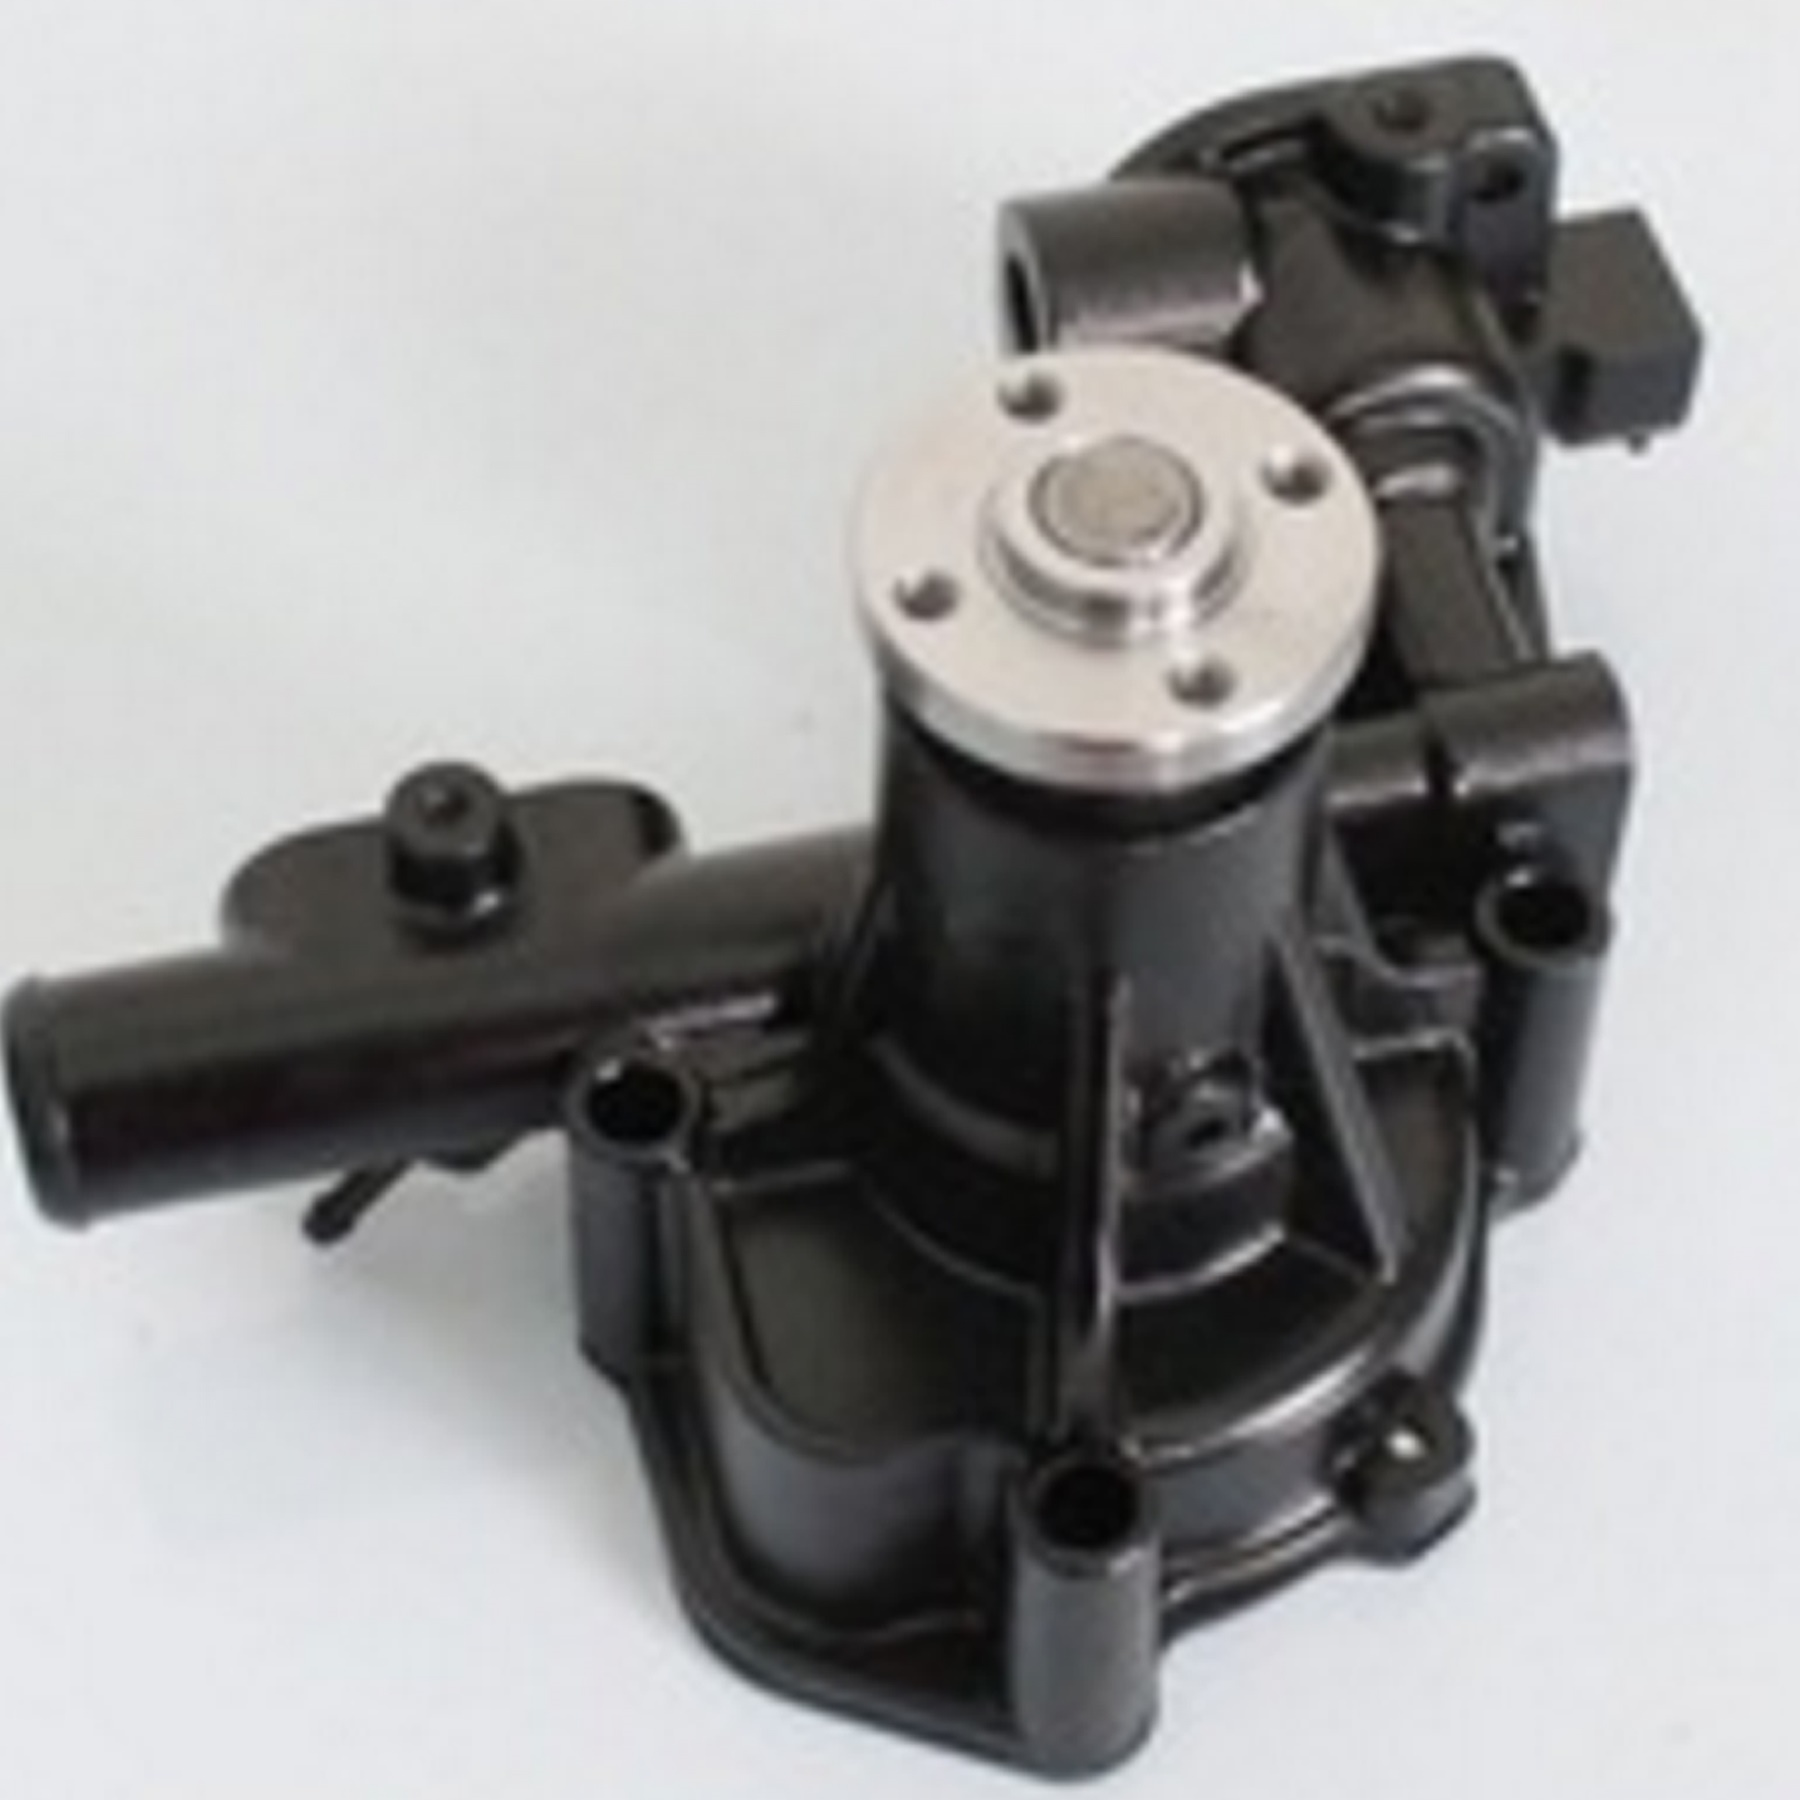 Water Pump Yanmar 3tn84l 4tn84 3tne84 3tnb84 3tne88 Engine